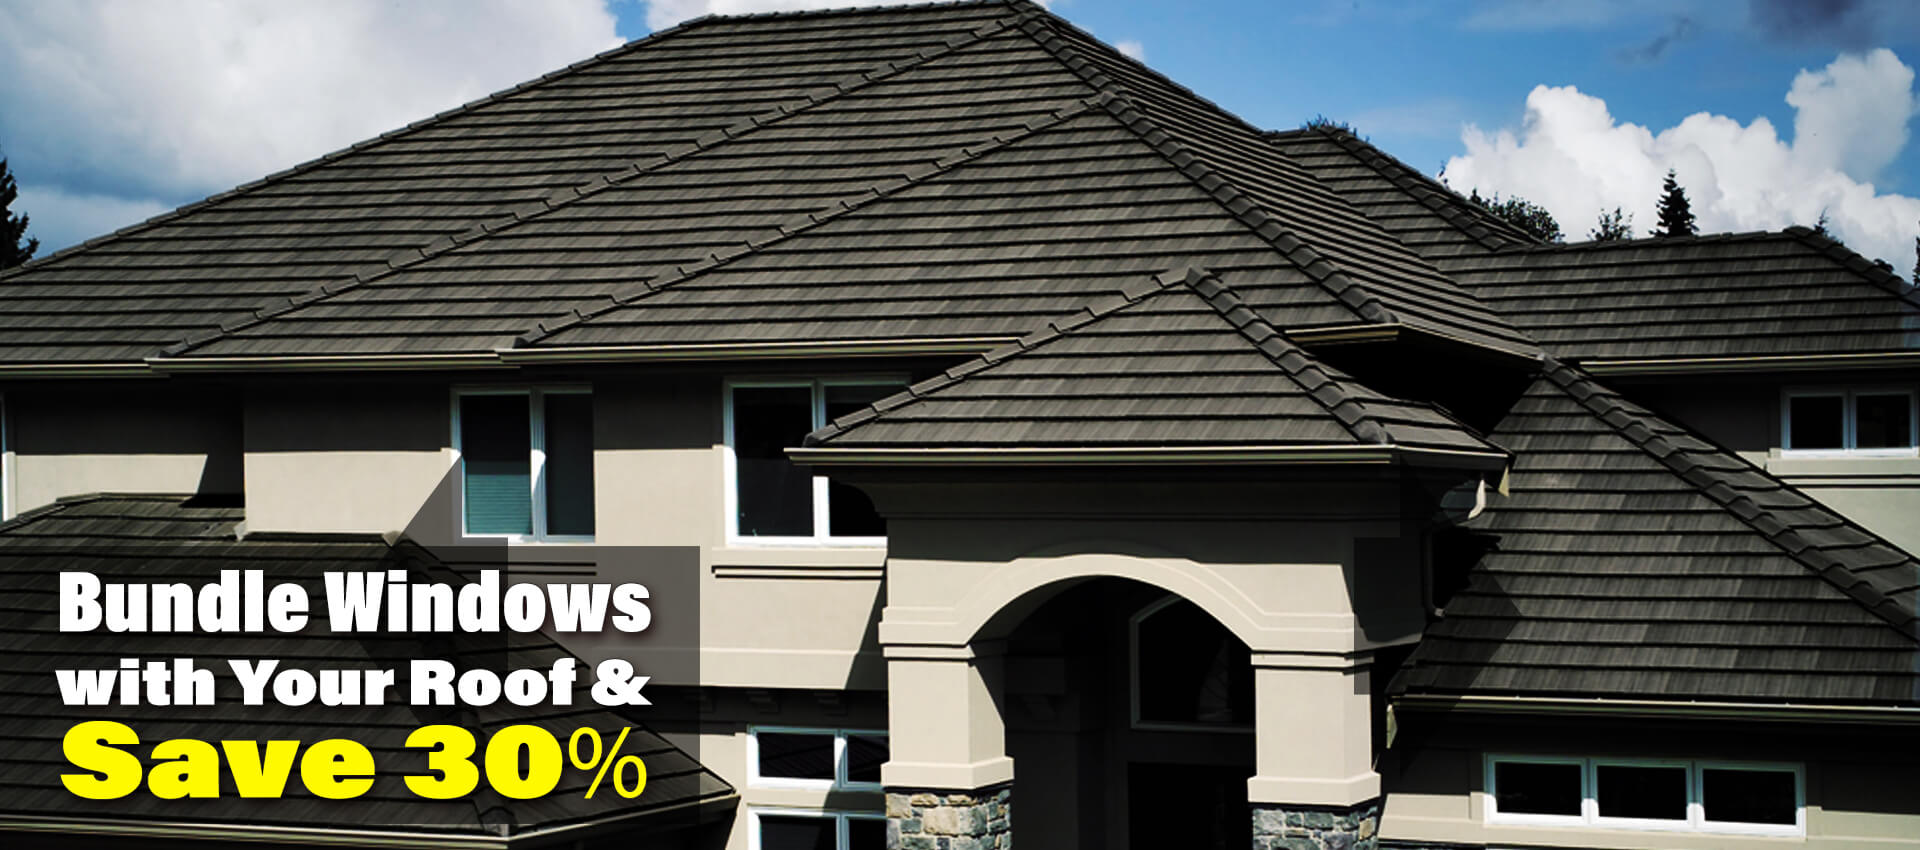 Bundle Roof and Windows to Save 30 percent